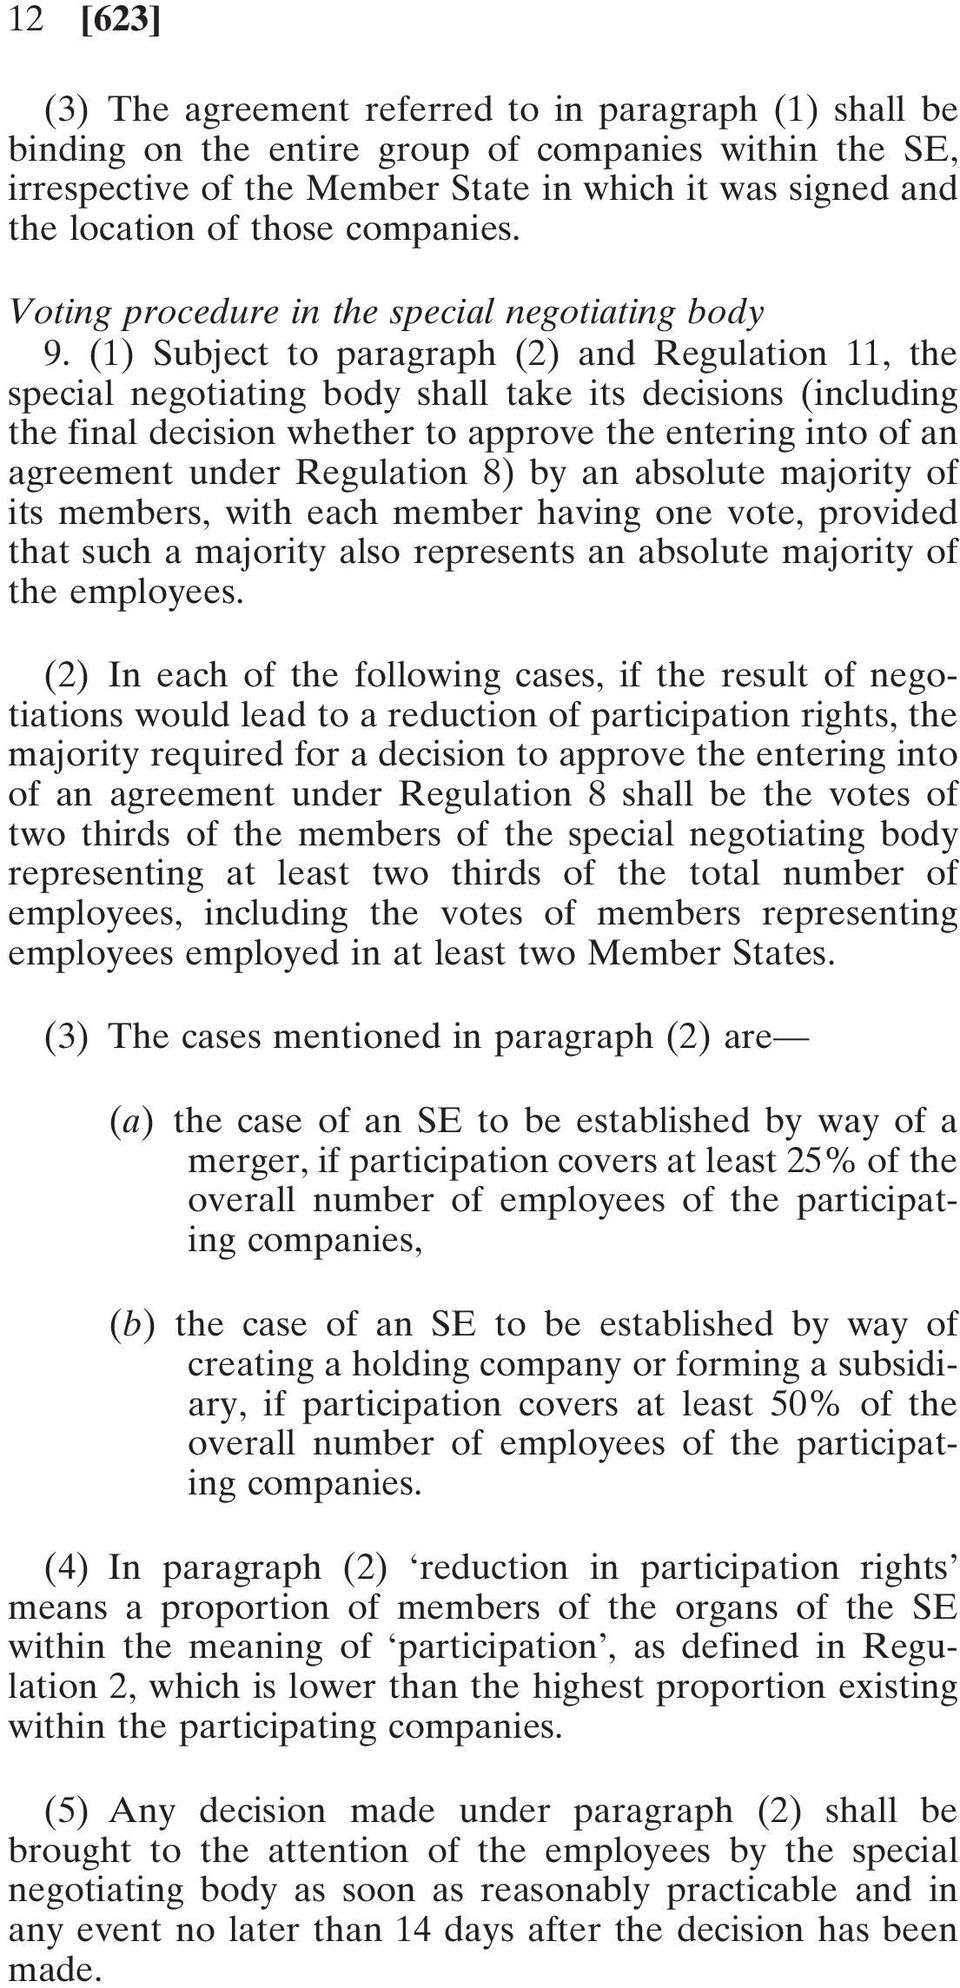 (1) Subject to paragraph (2) and Regulation 11, the special negotiating body shall take its decisions (including the final decision whether to approve the entering into of an agreement under